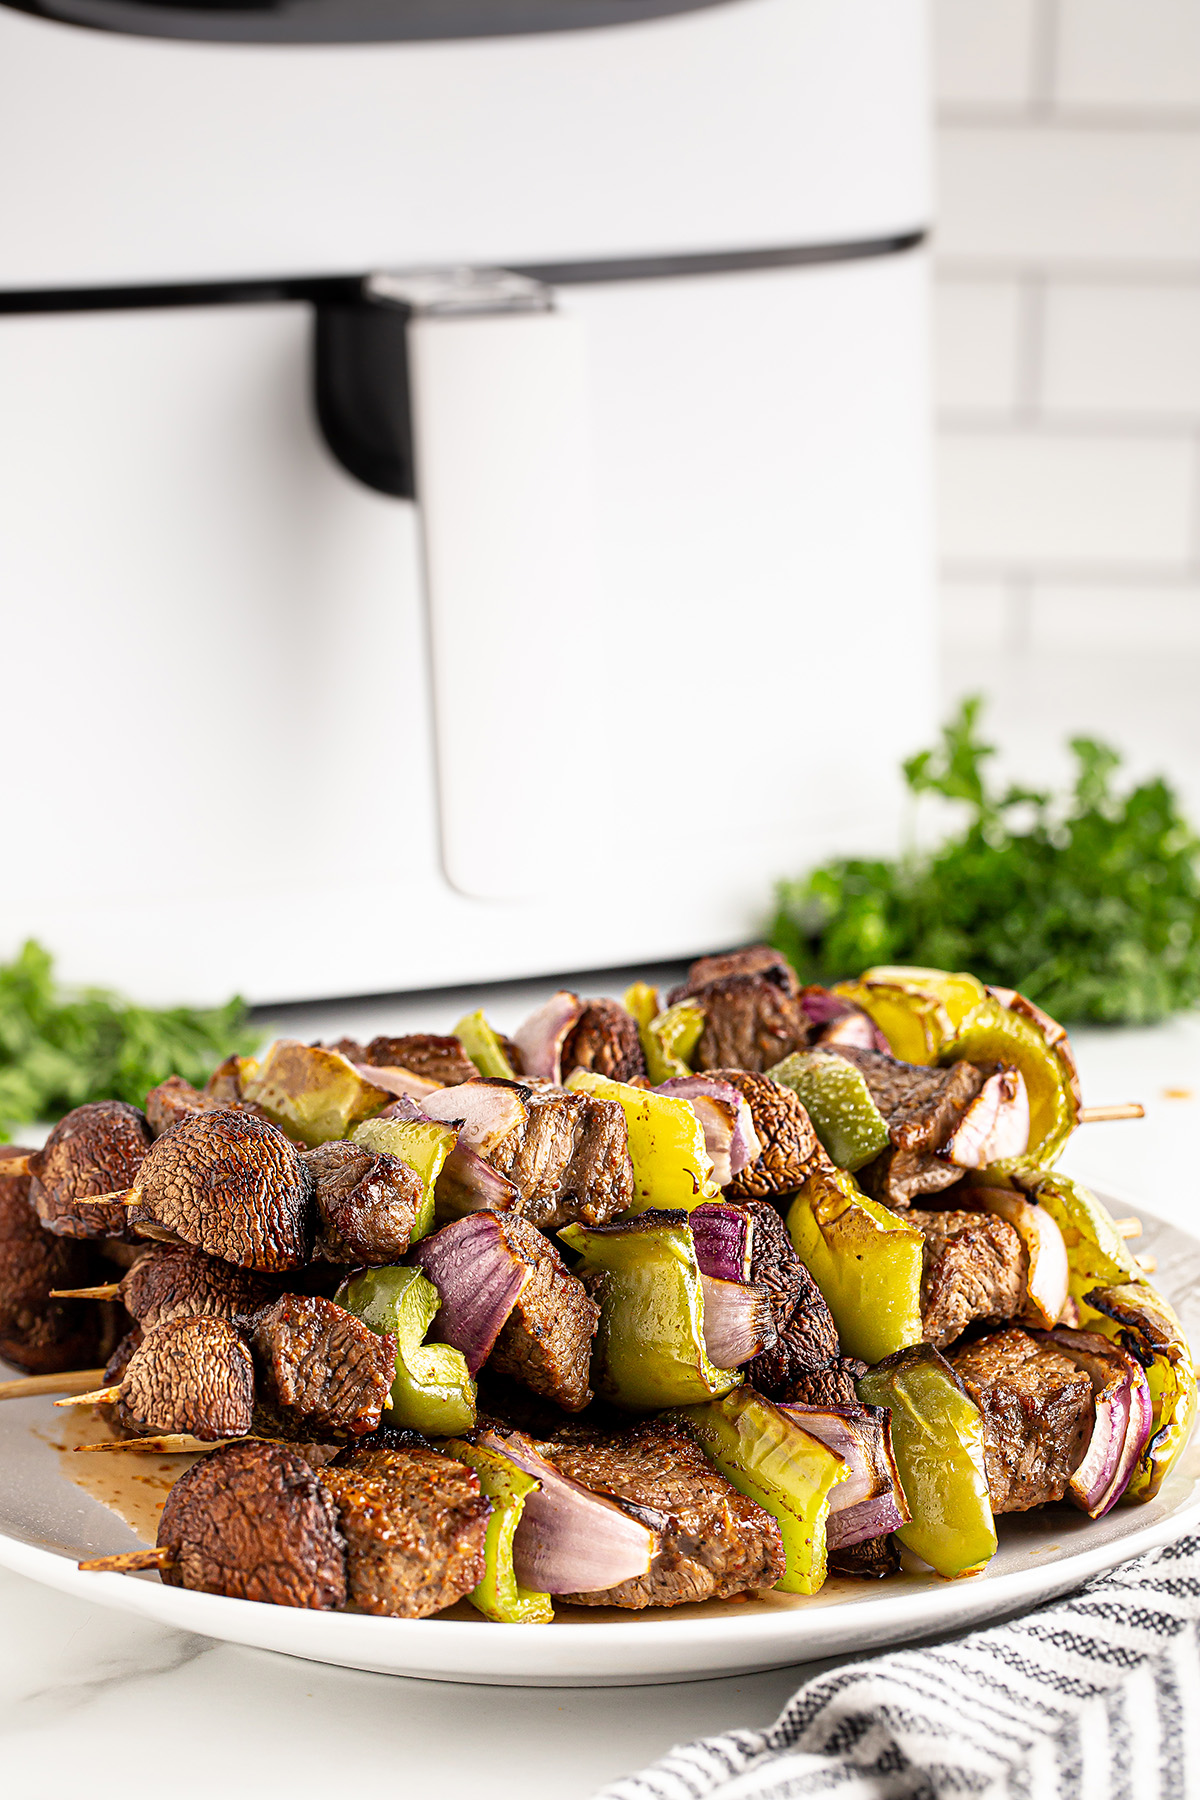 A plate full of kabobs in front of an air fryer